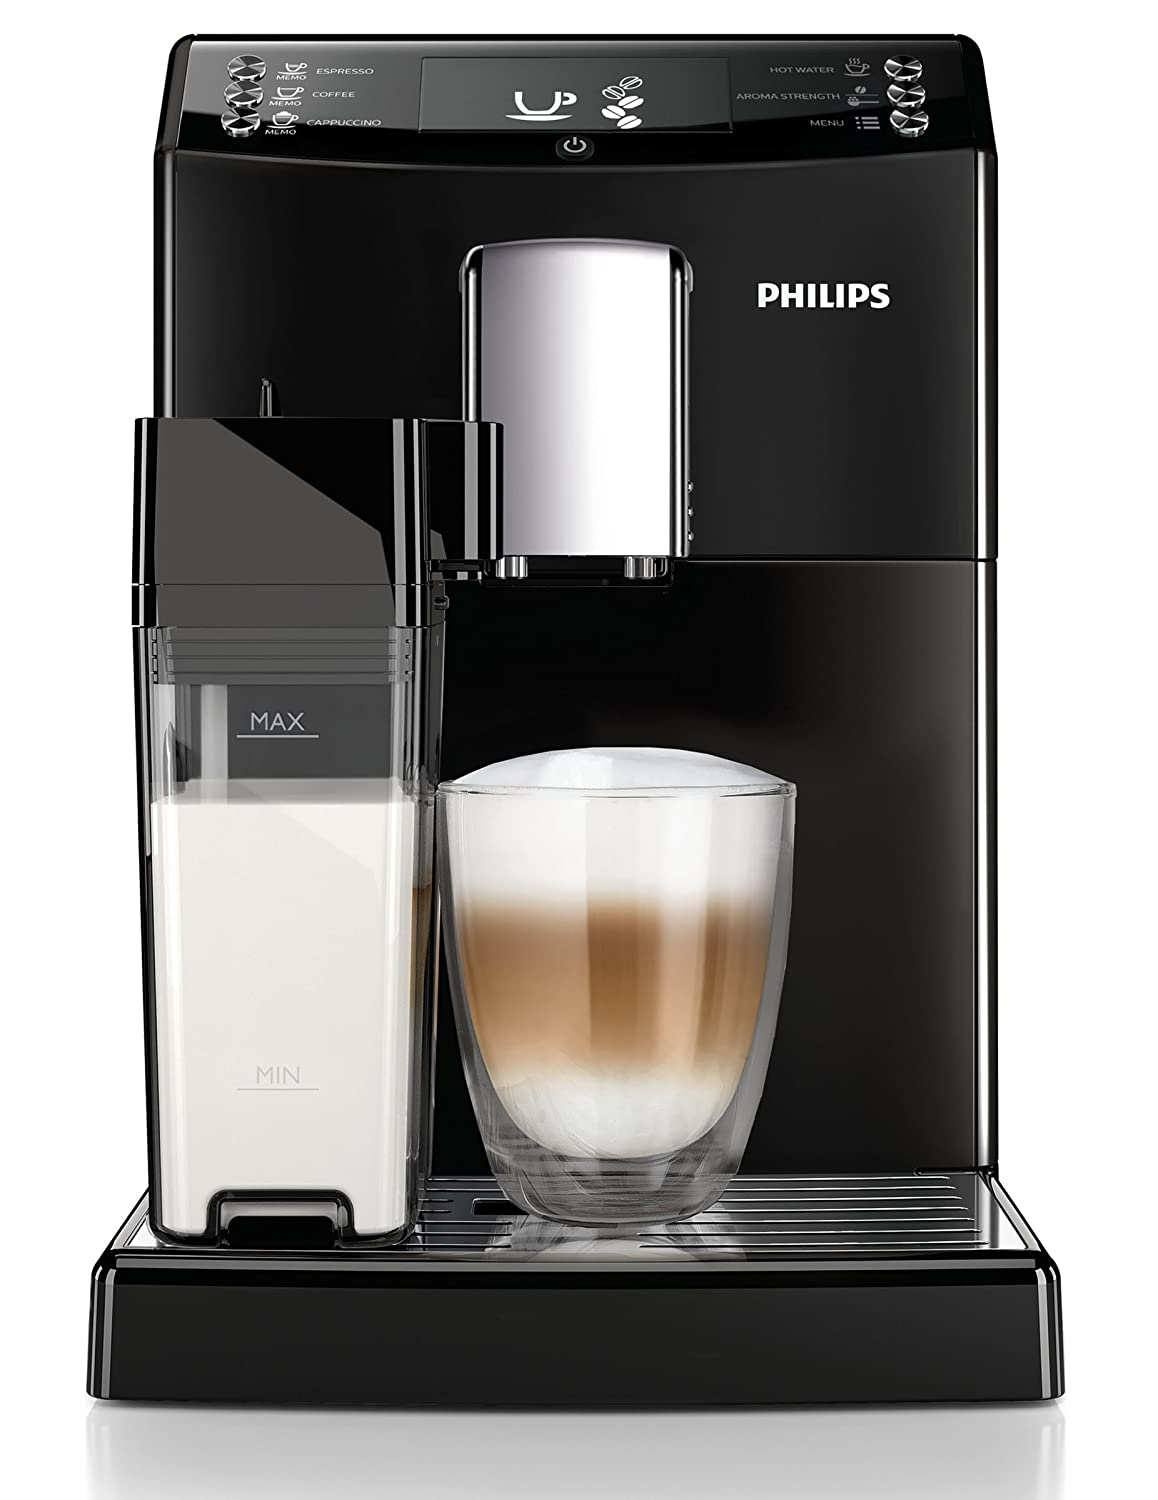 [amazon.de] Philips 3100 EP3550/00 aparat za kavu za 309,99€ umjesto 388€